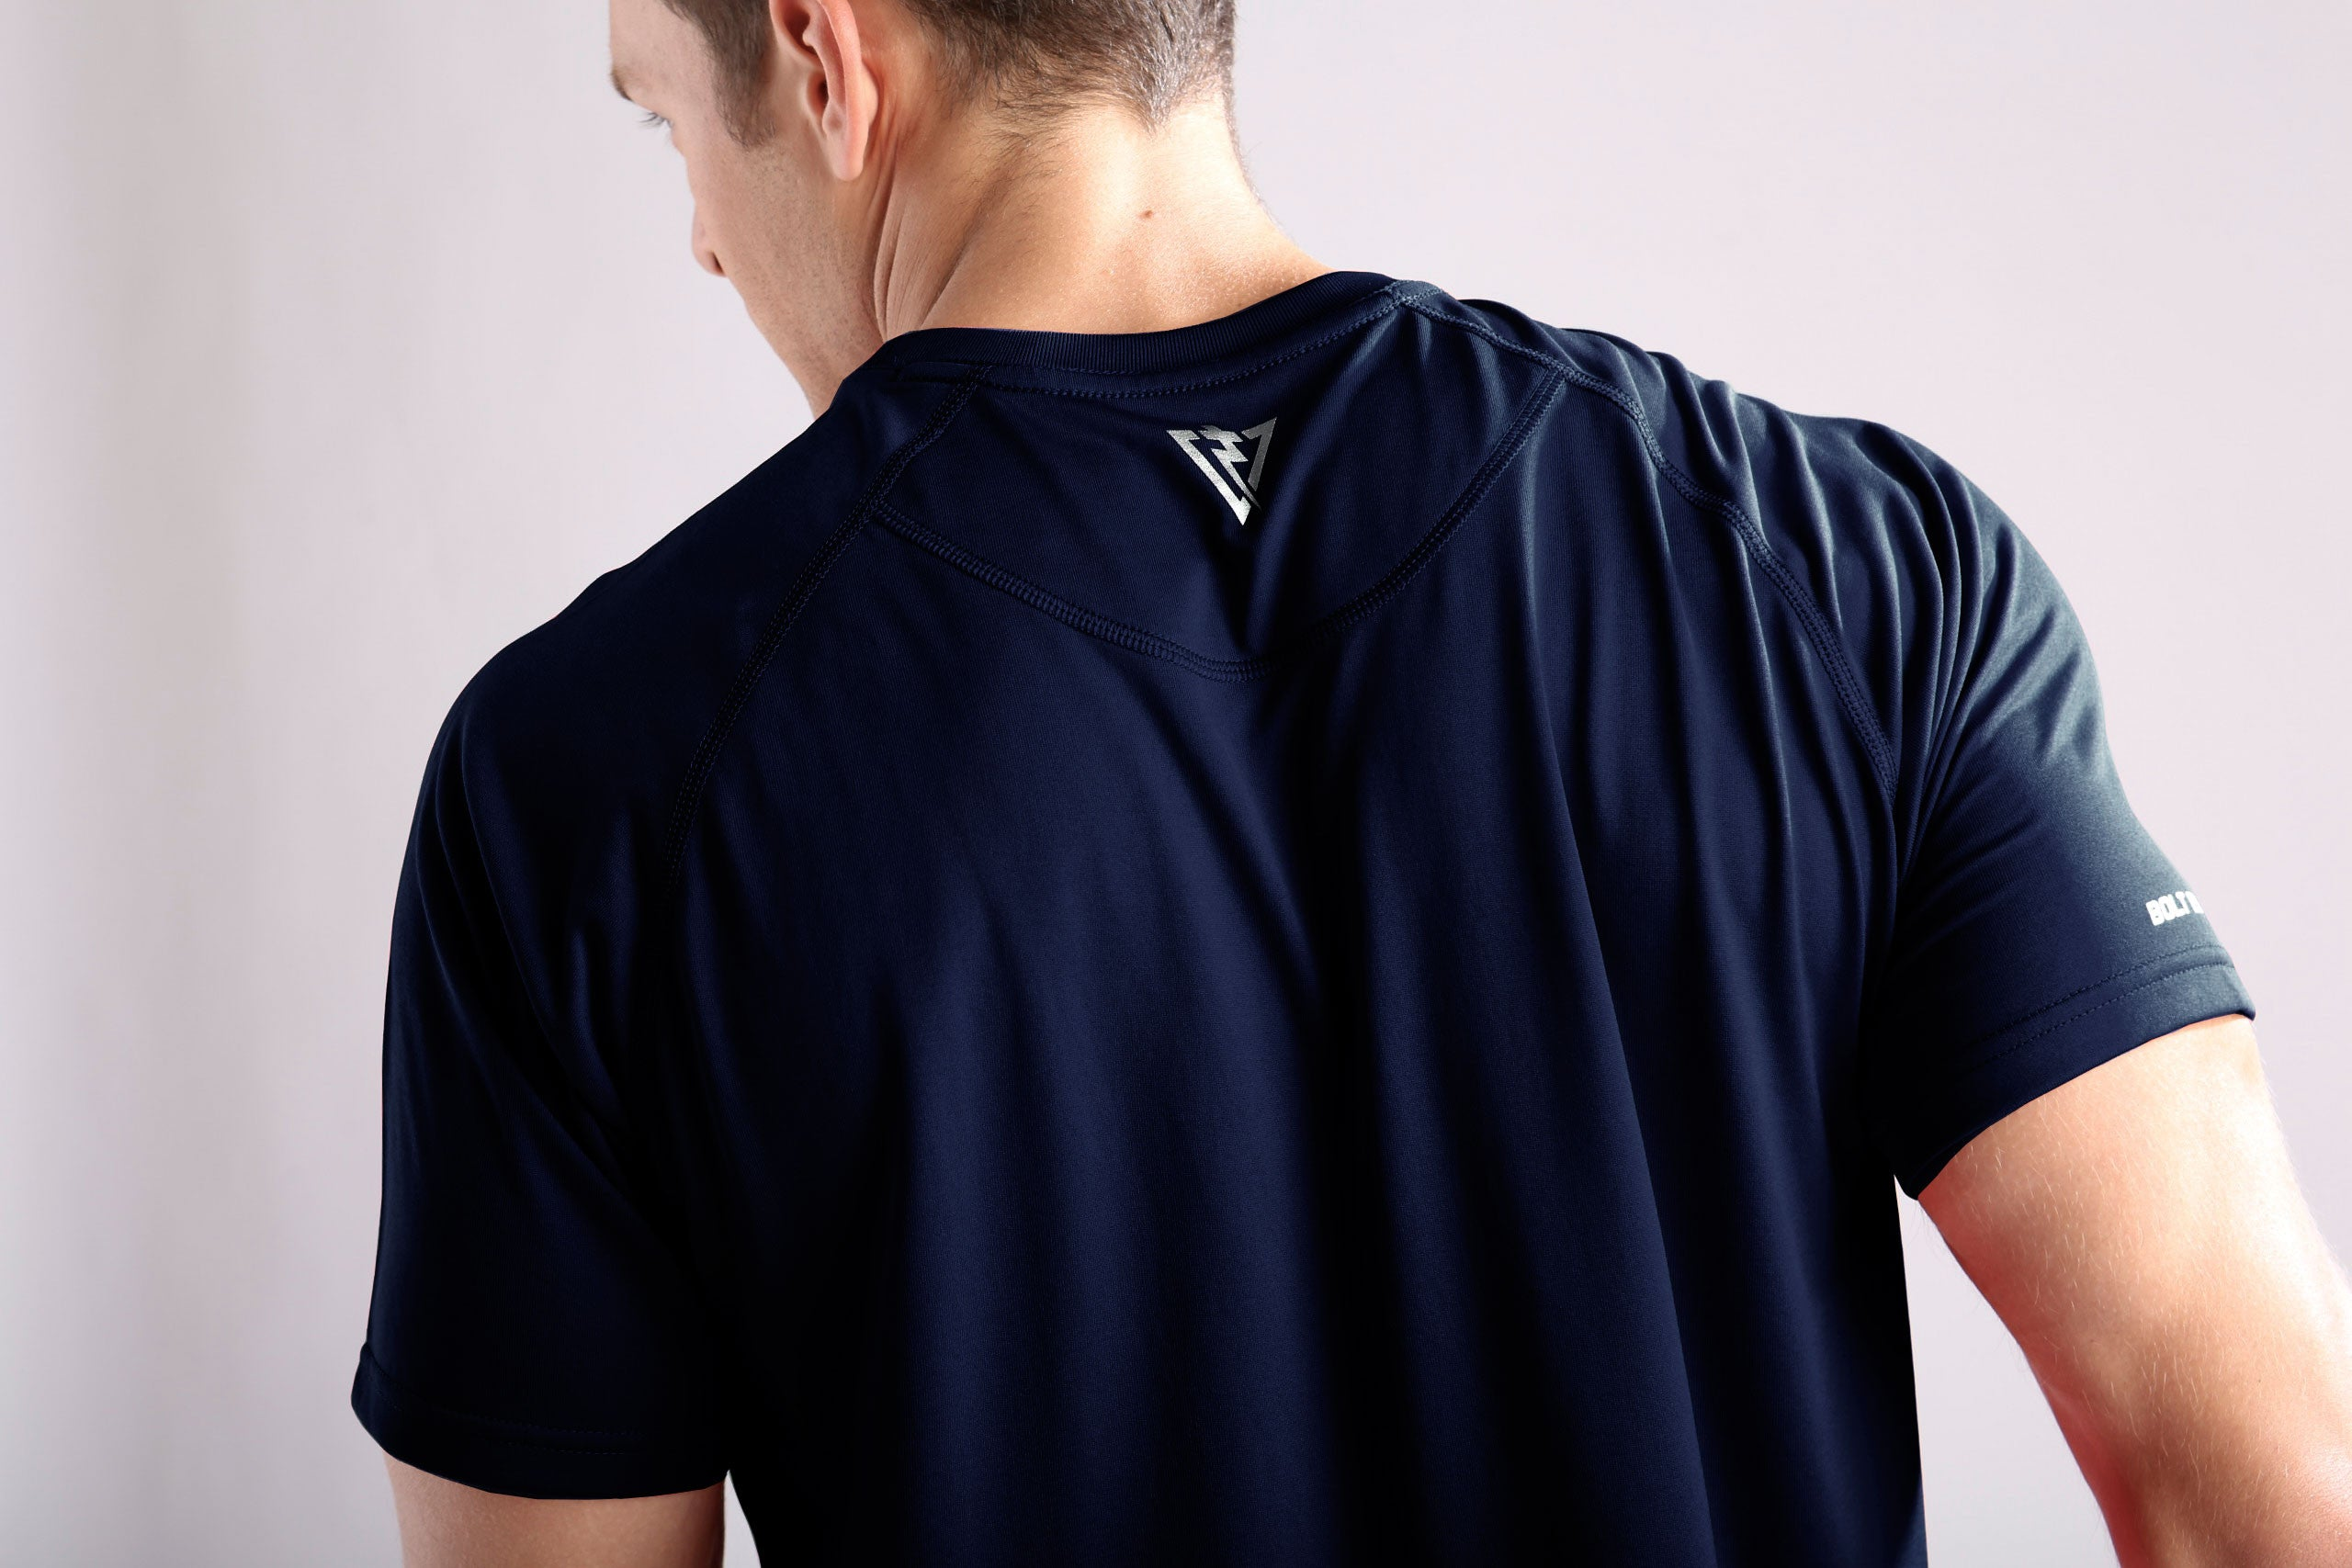 The BoltX Tall Anti-Stink Shirt